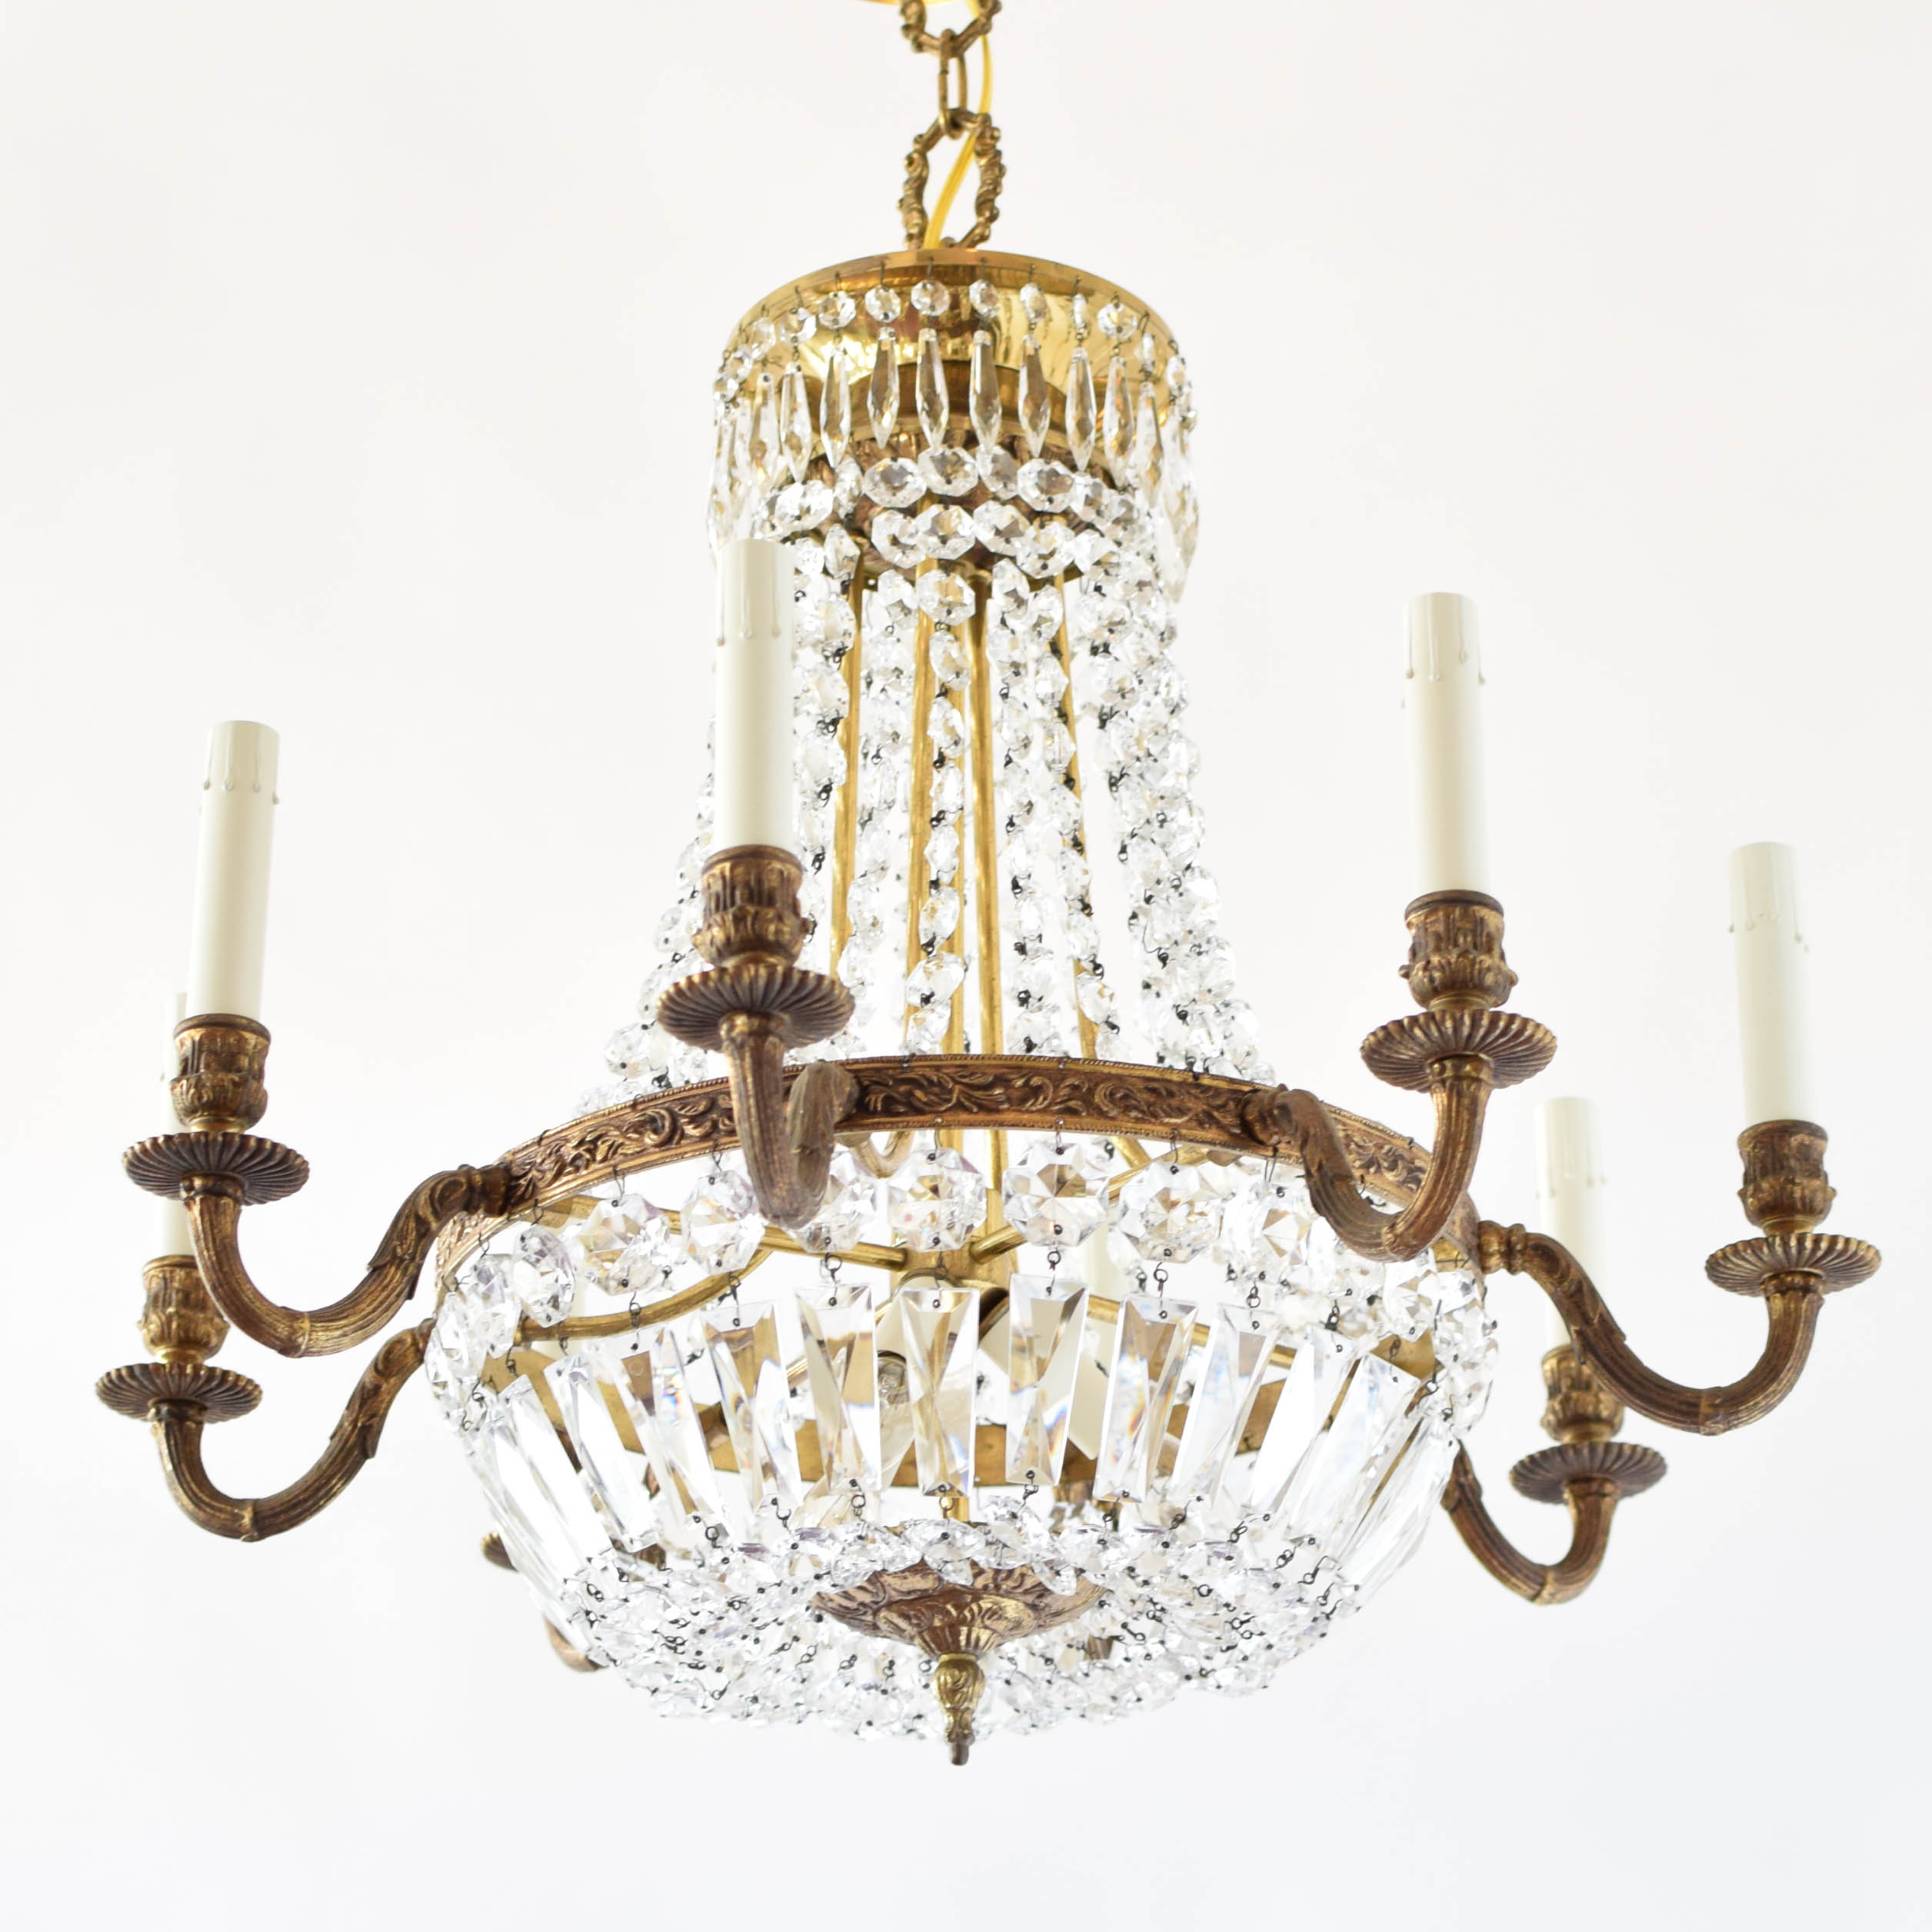 Old fashioned crystal chandeliers 8